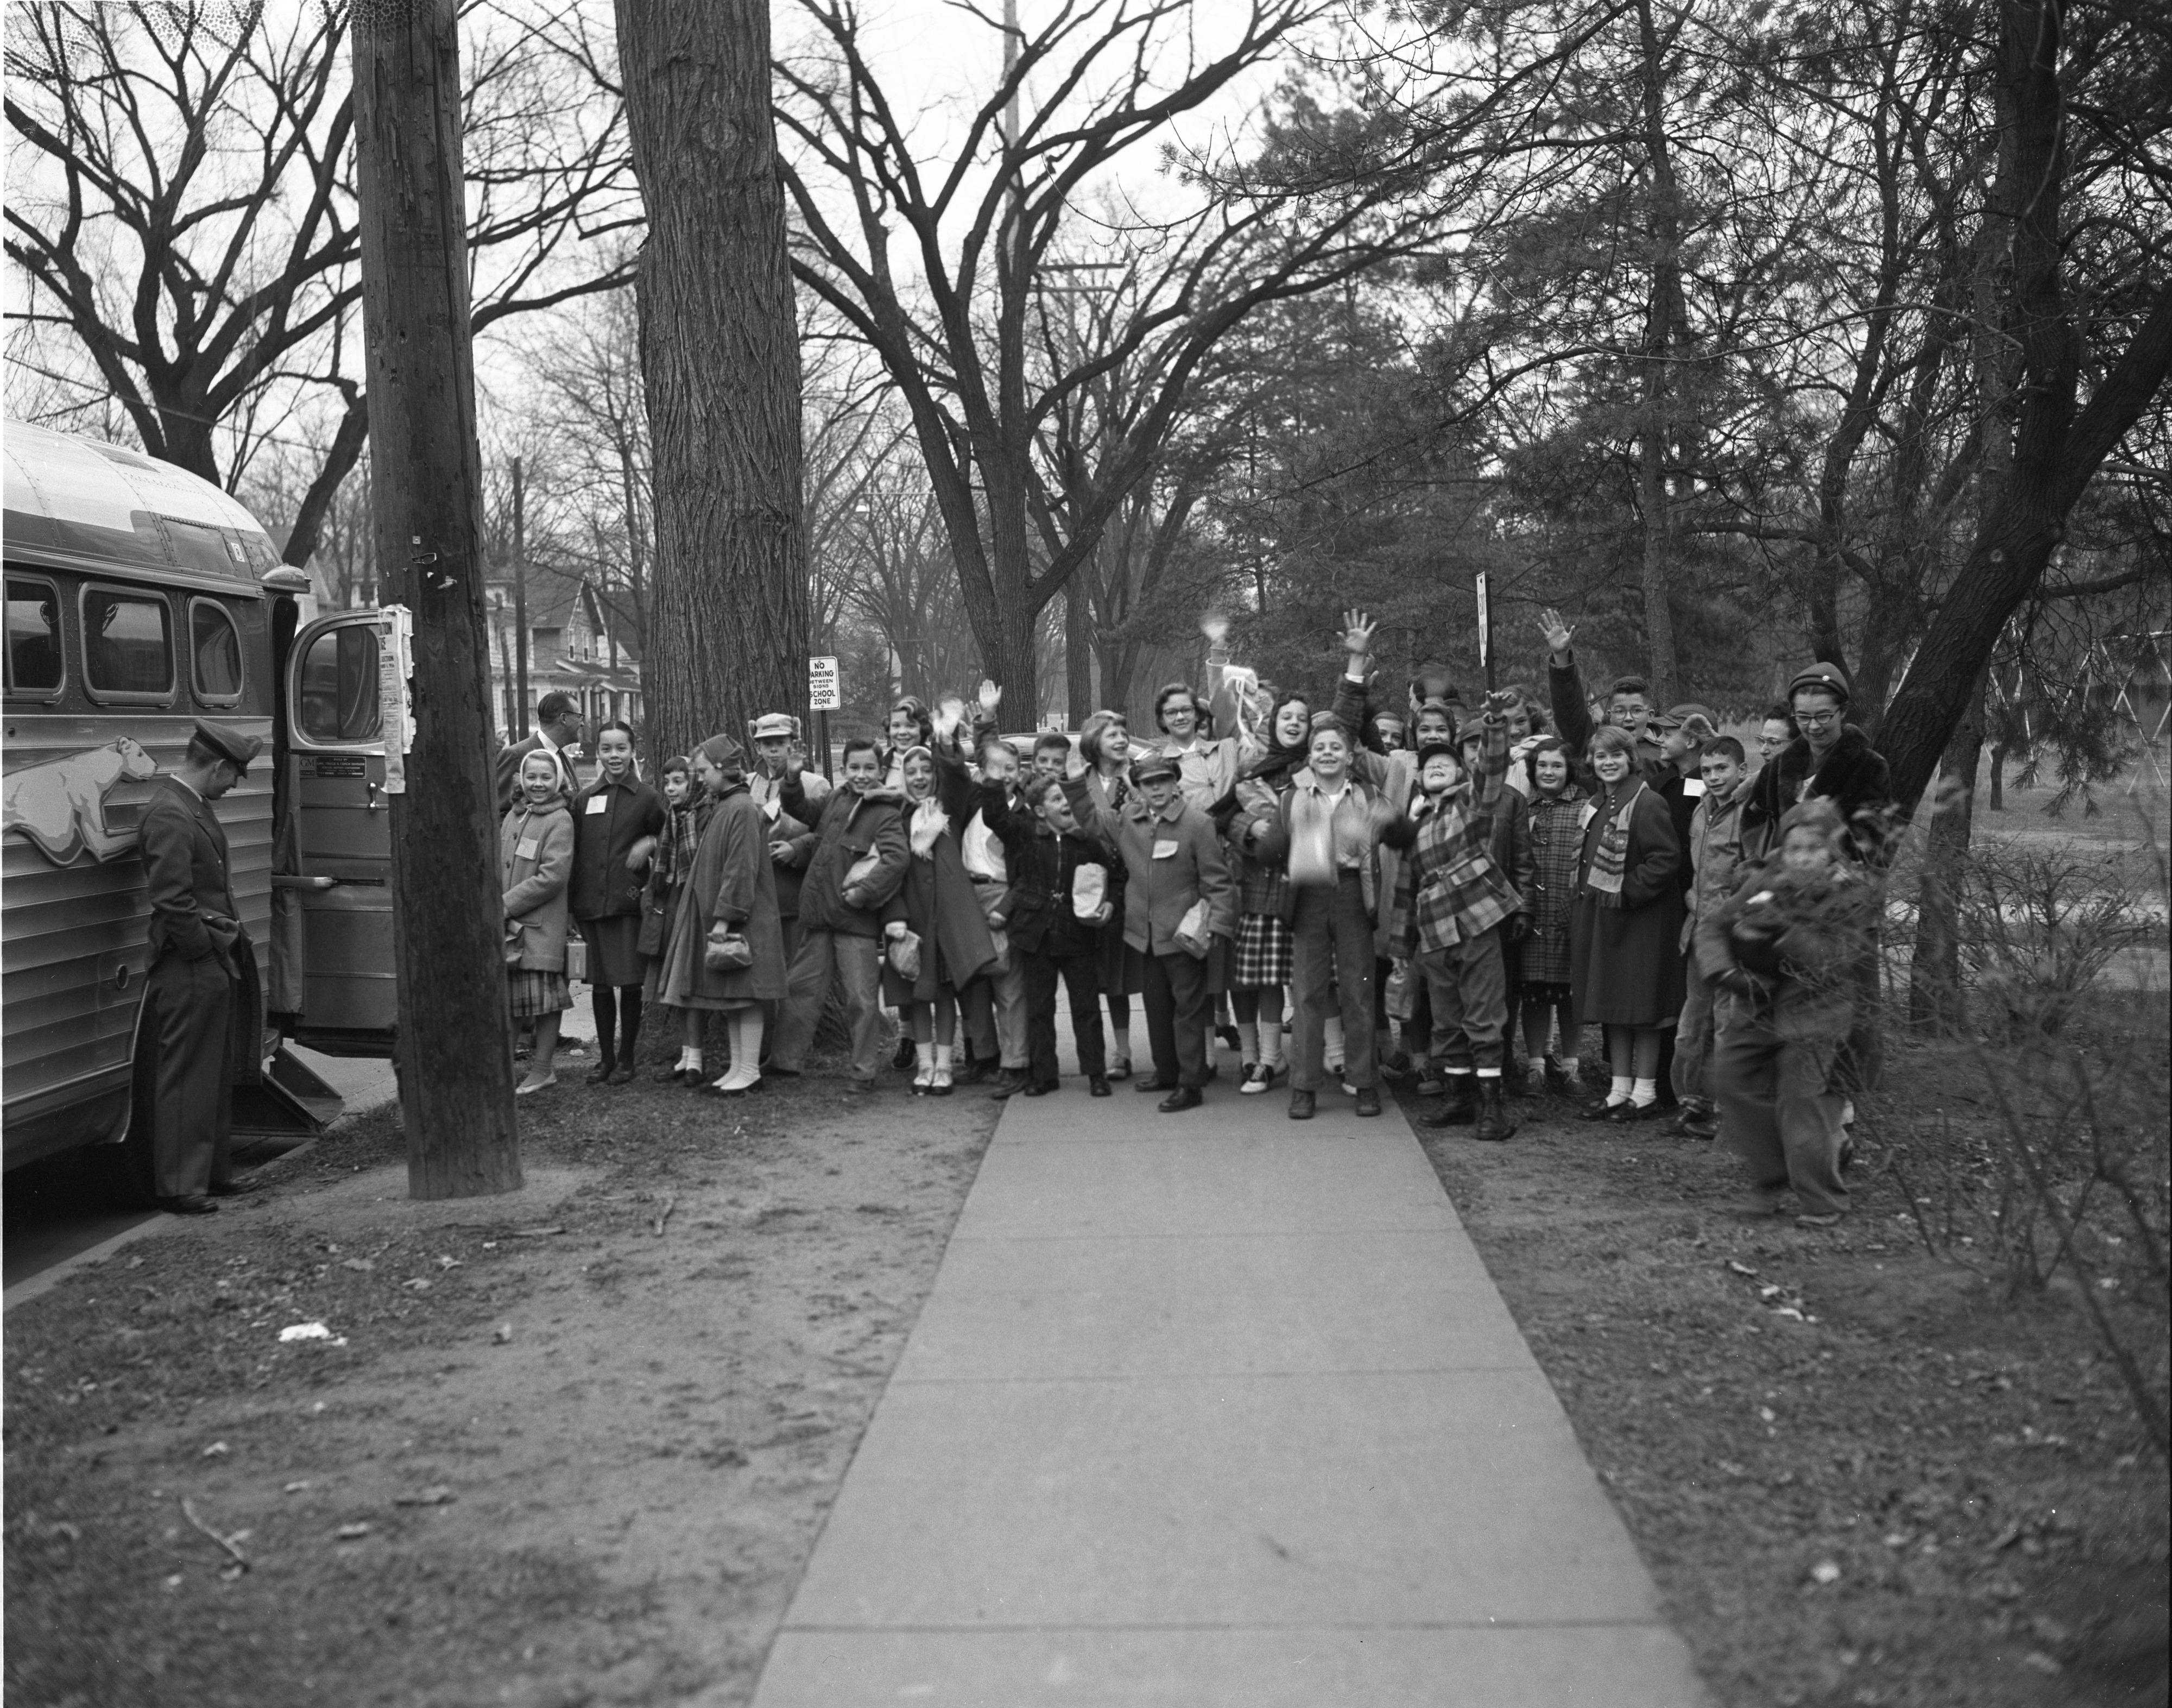 Burns Park Sixth Graders Leave For Canada, November 1956 image